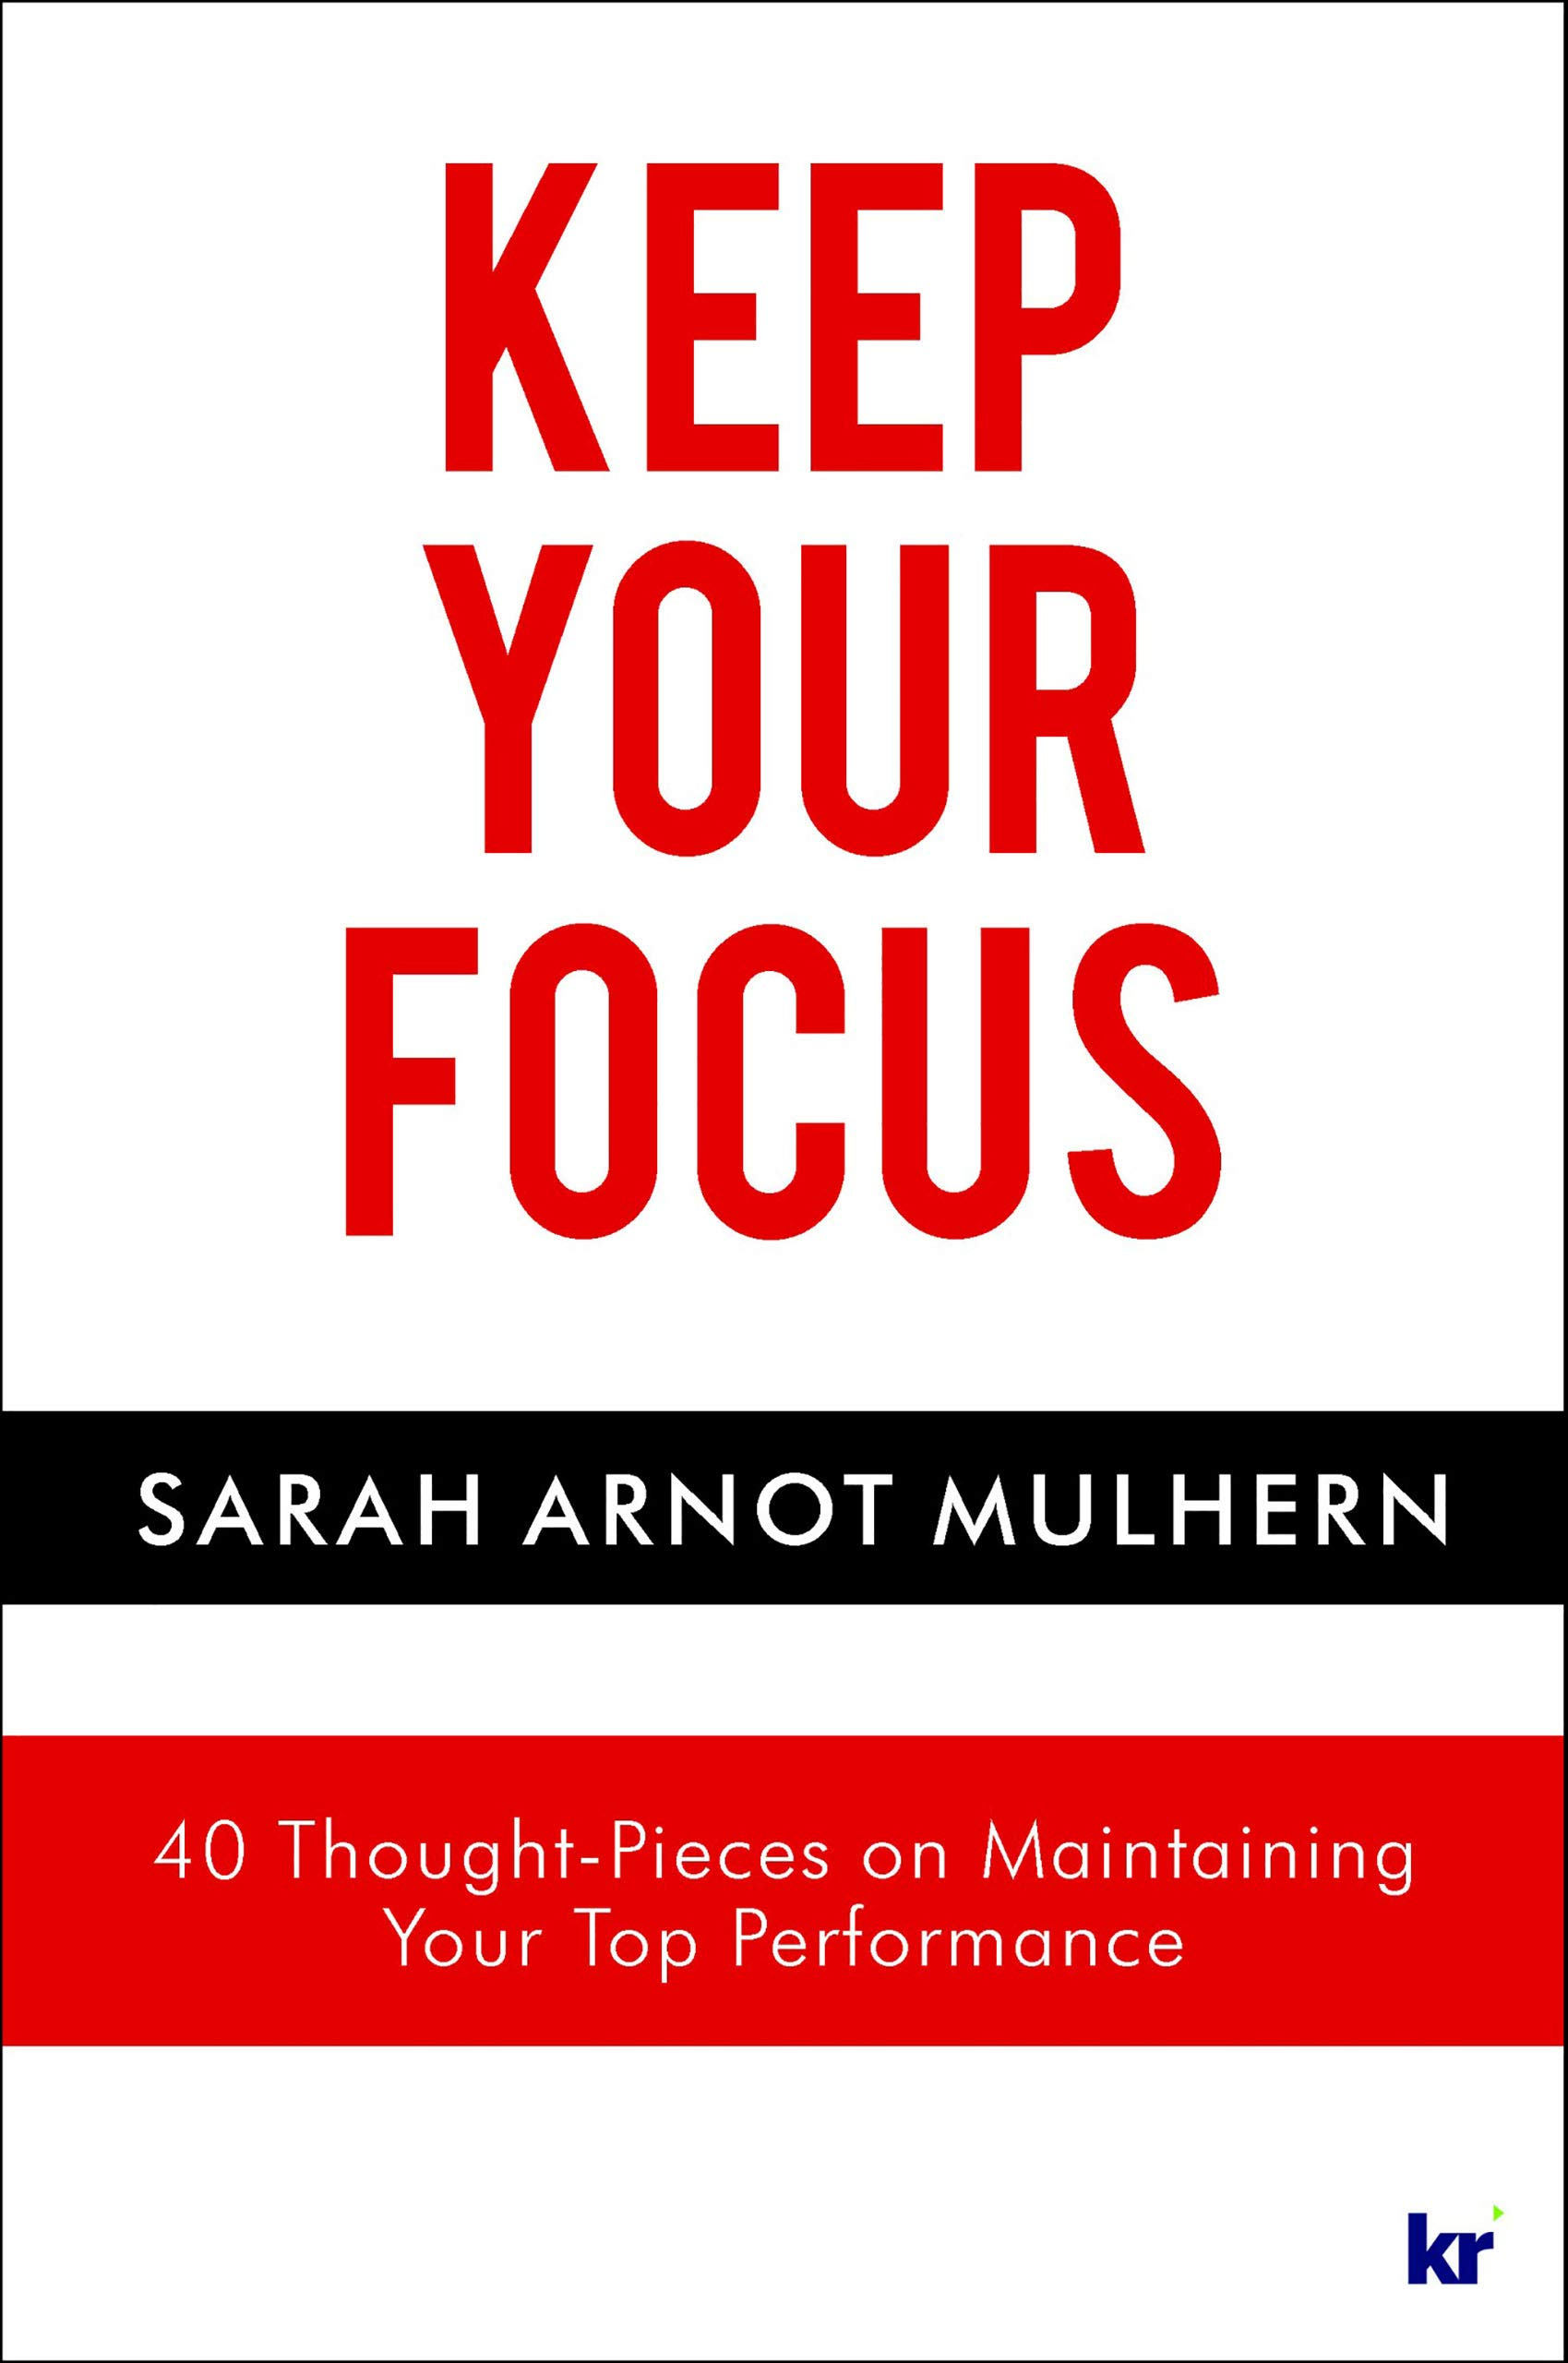 KEEP YOUR FOCUS: 40 Thought-Pieces on Maintaining Your Top Performance